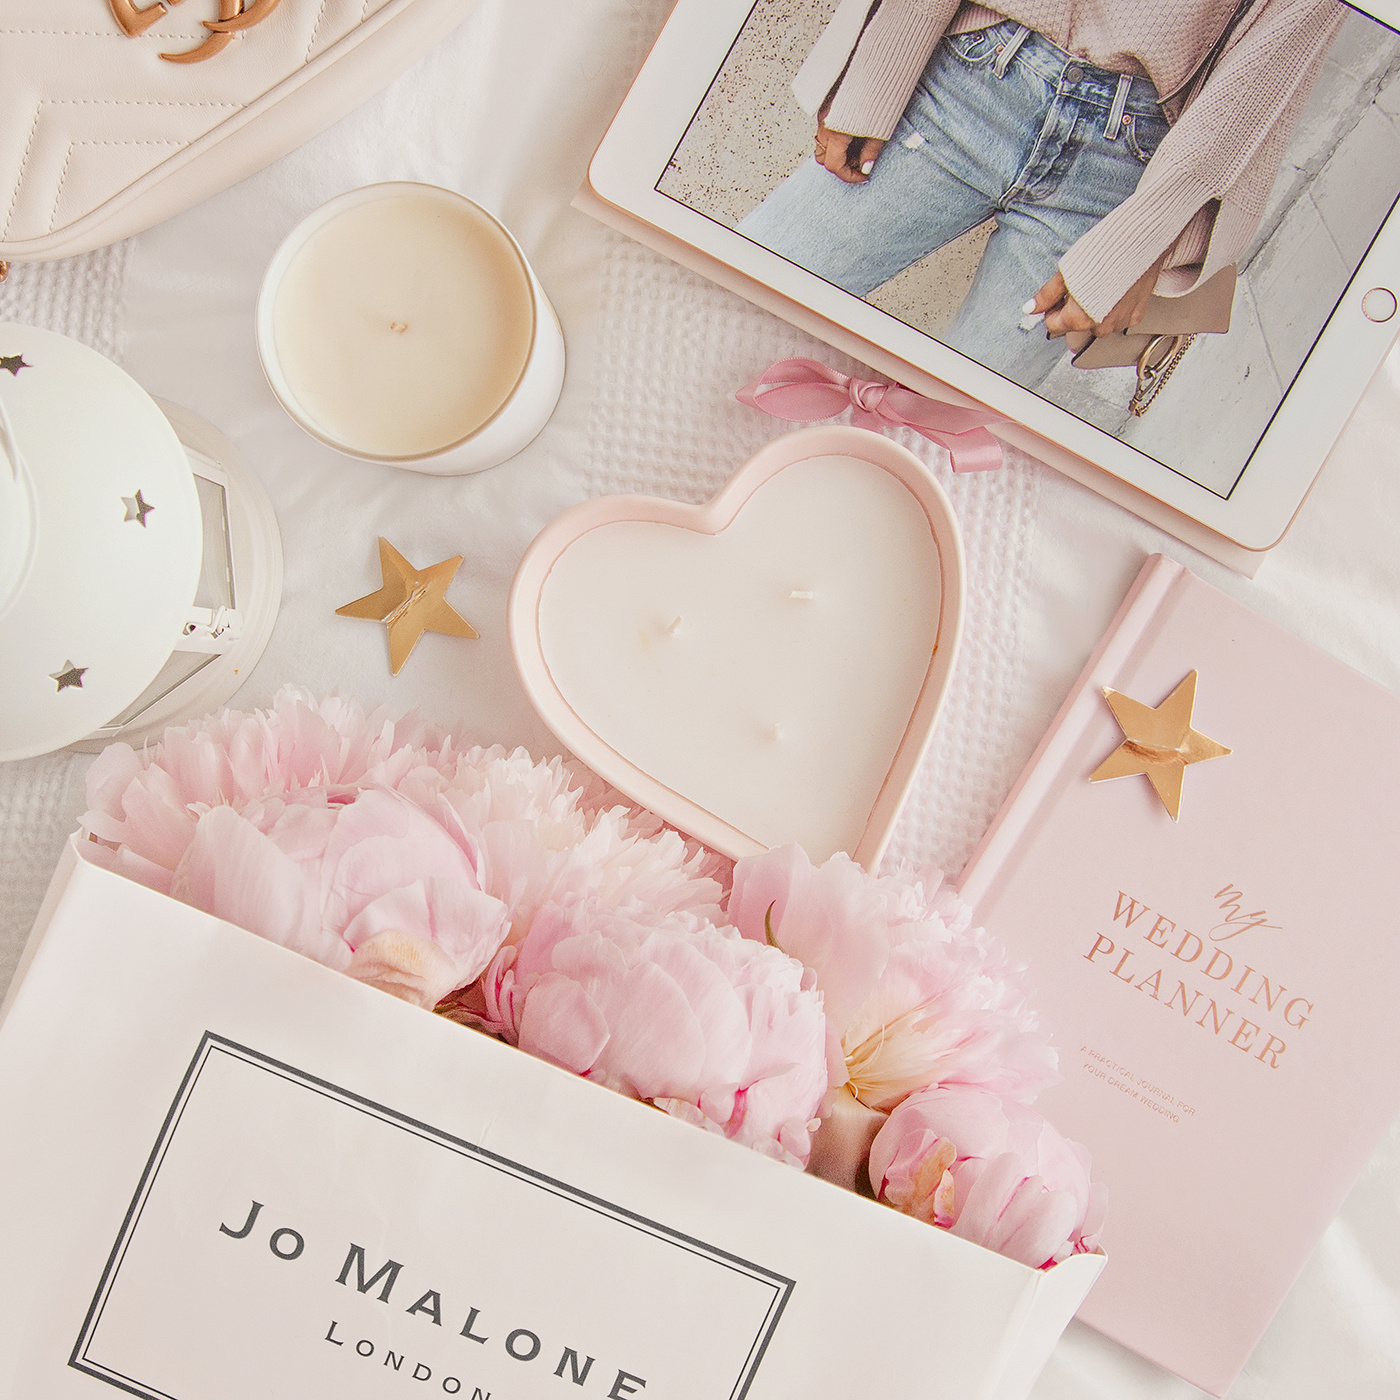 Flat lay image of a Jo Malone shopping bag filled with pink peonies